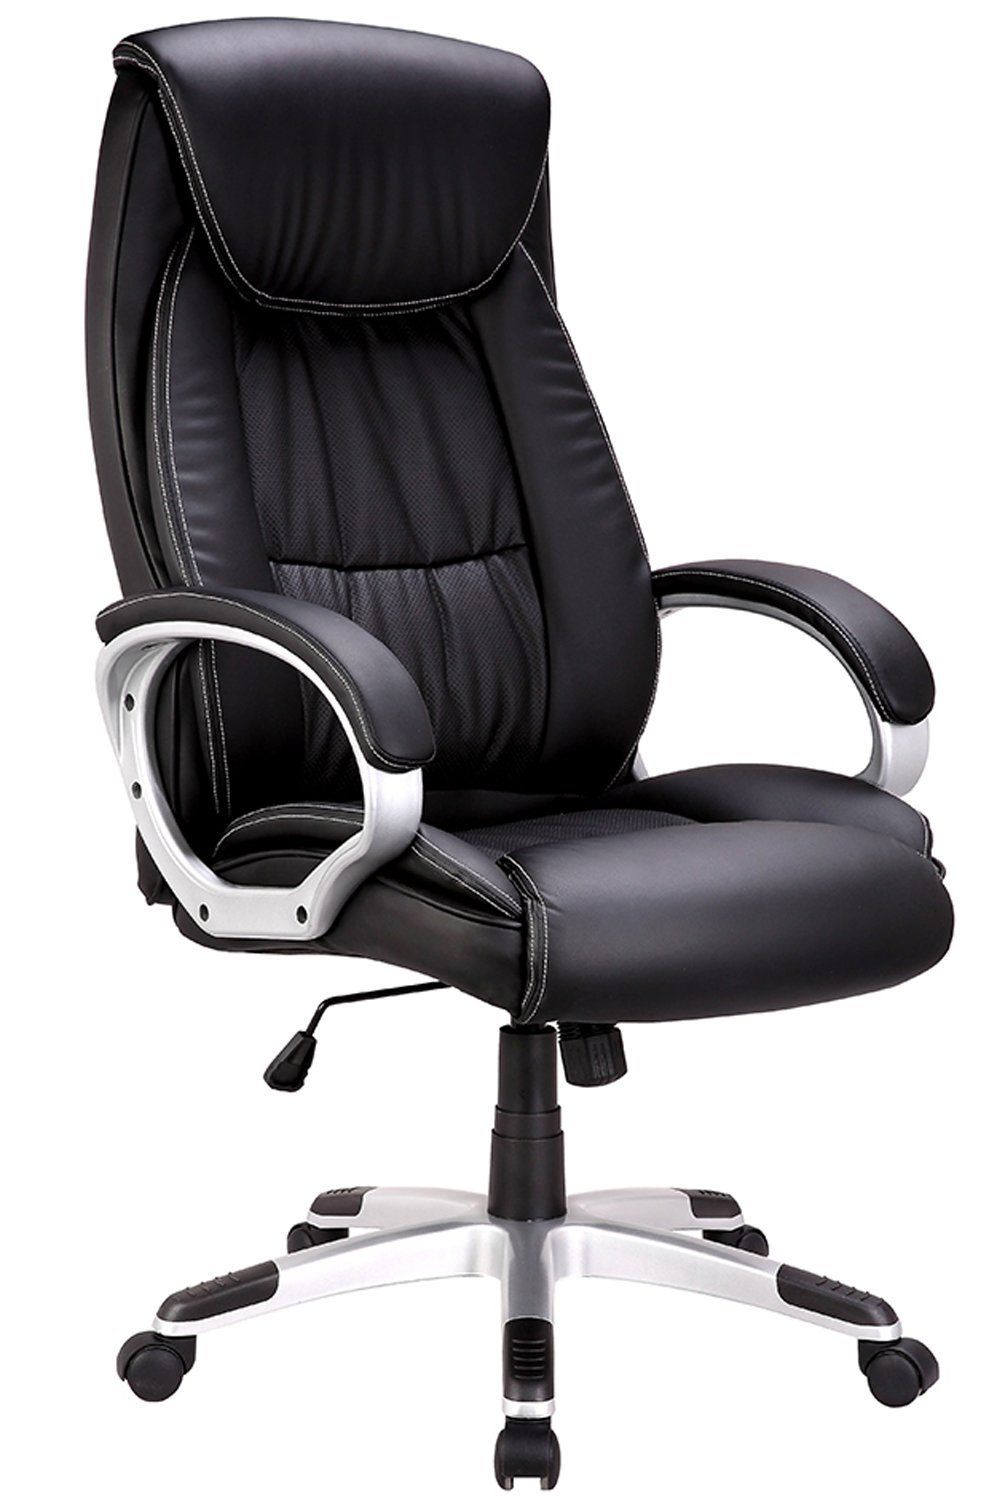 Highback executive office chair intimate wm